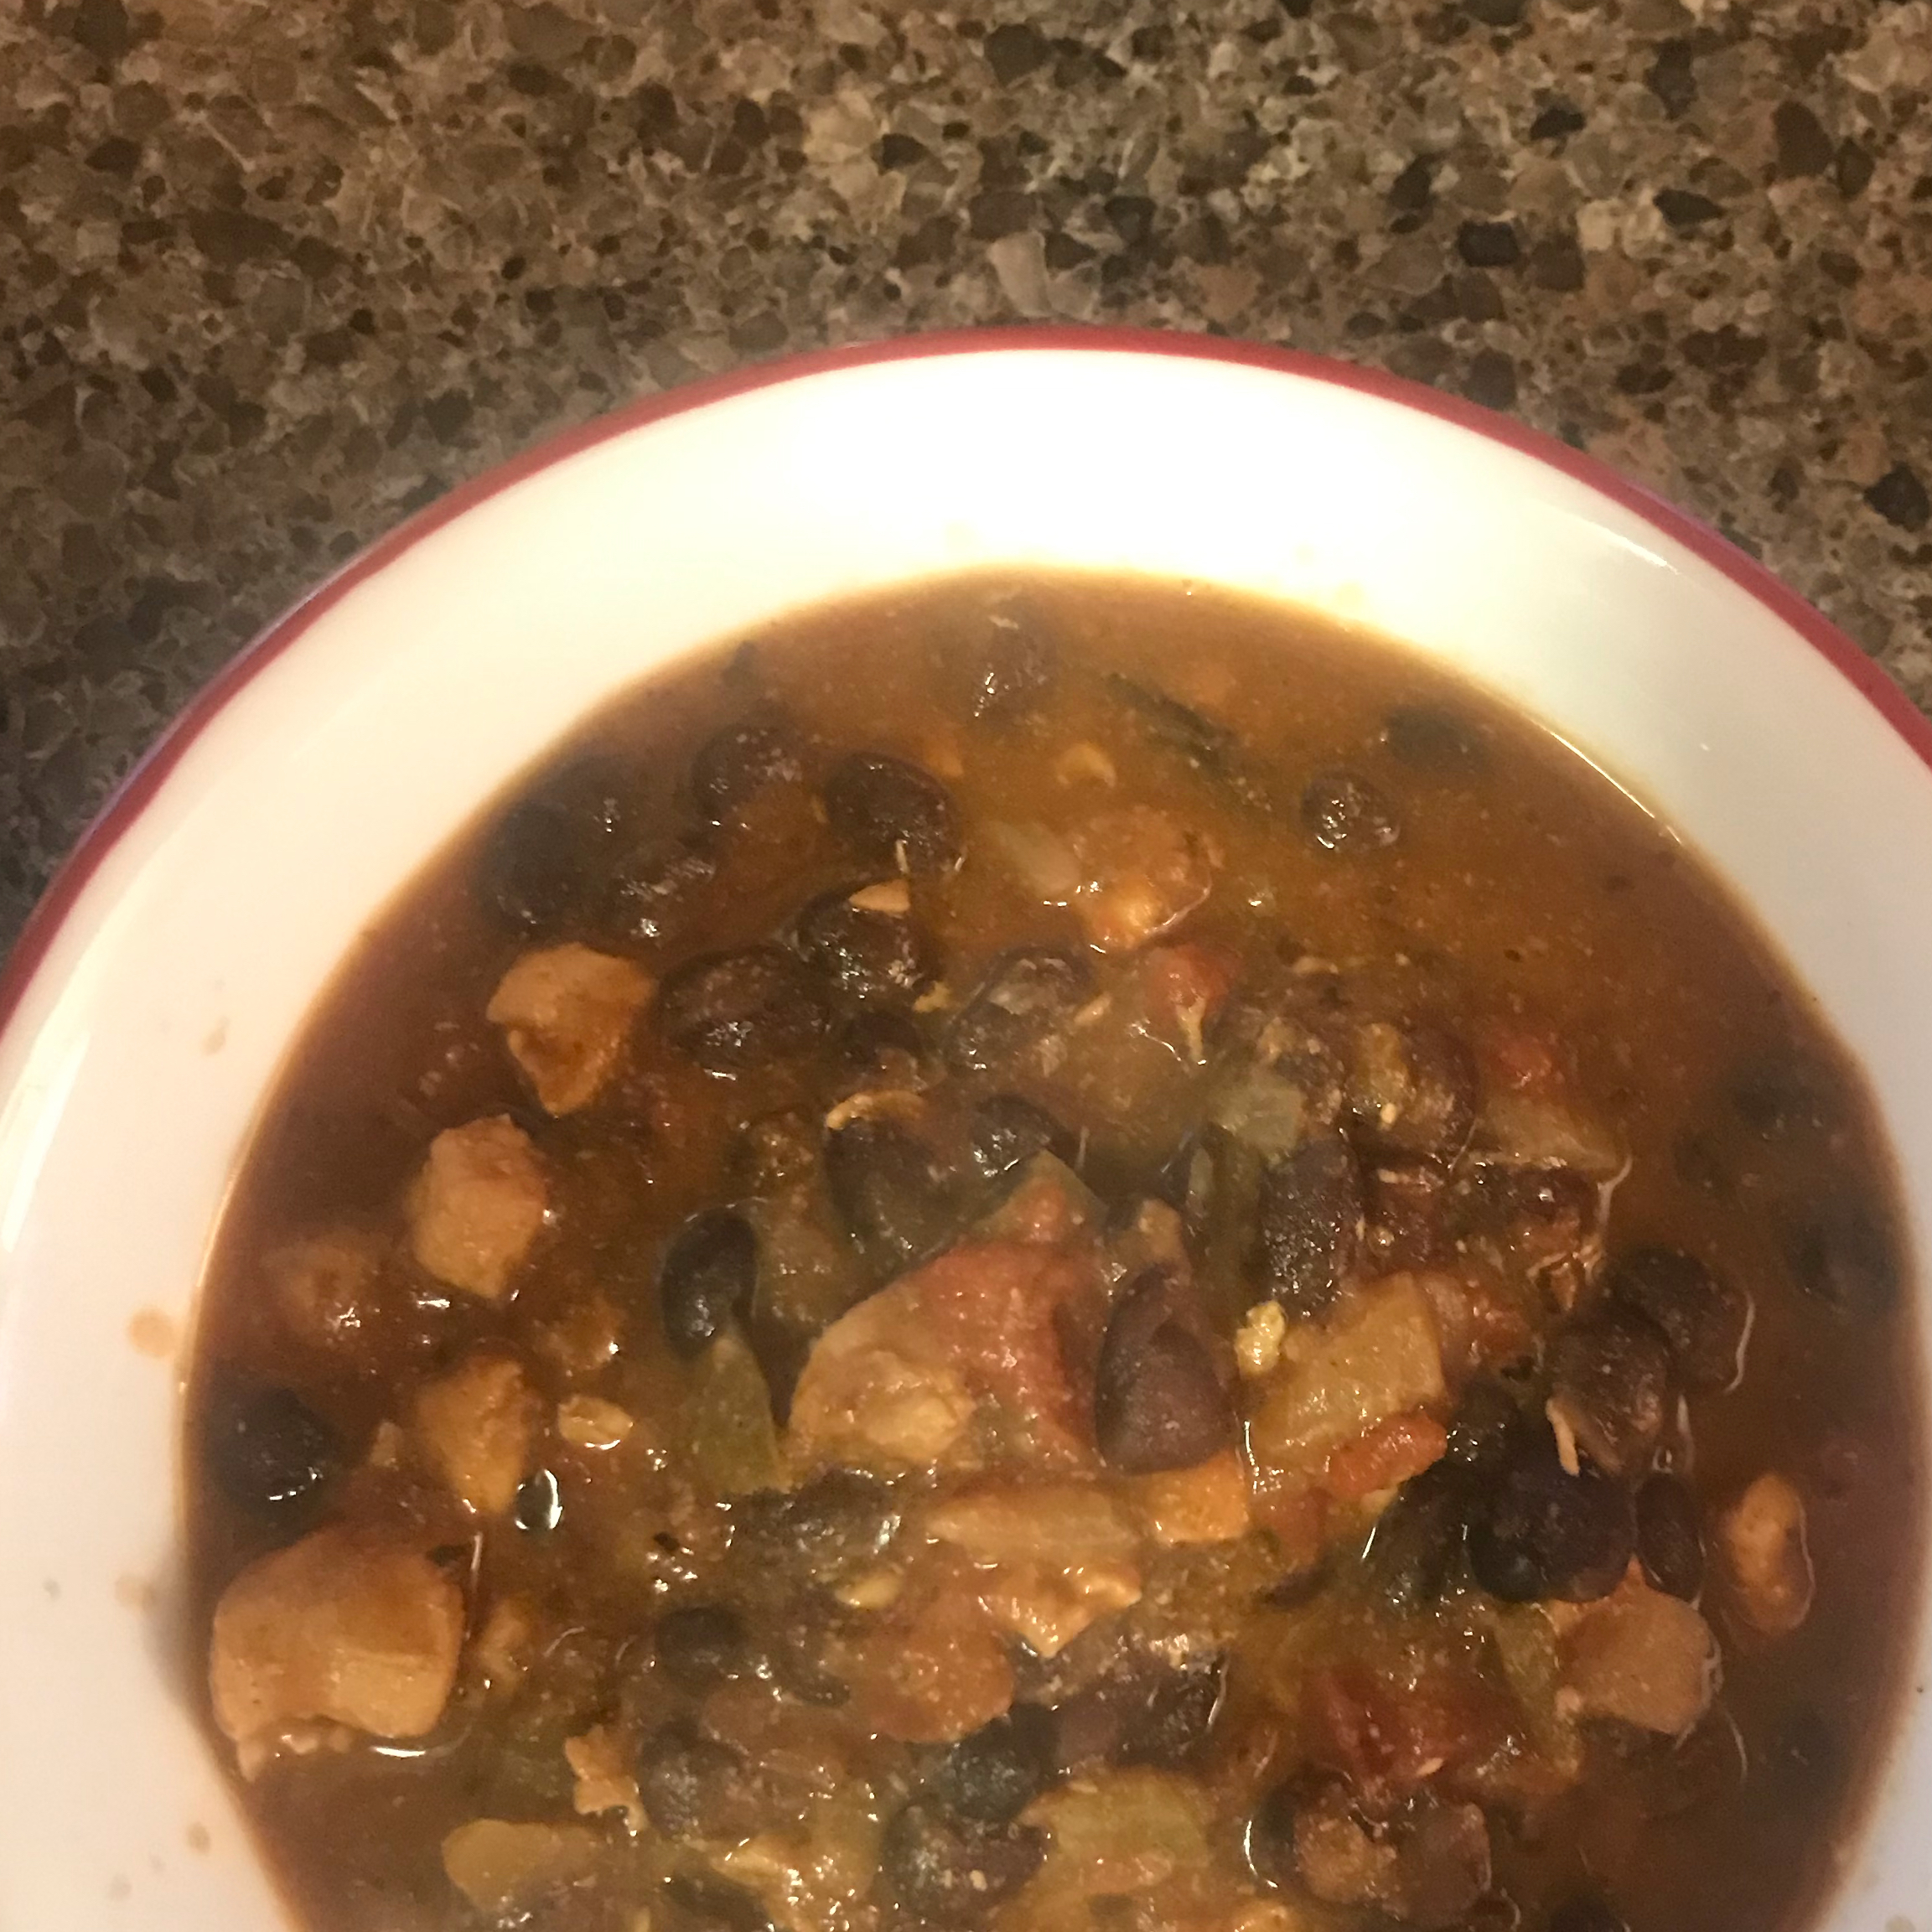 Fantastic Black Bean Chili Gregory Thousand